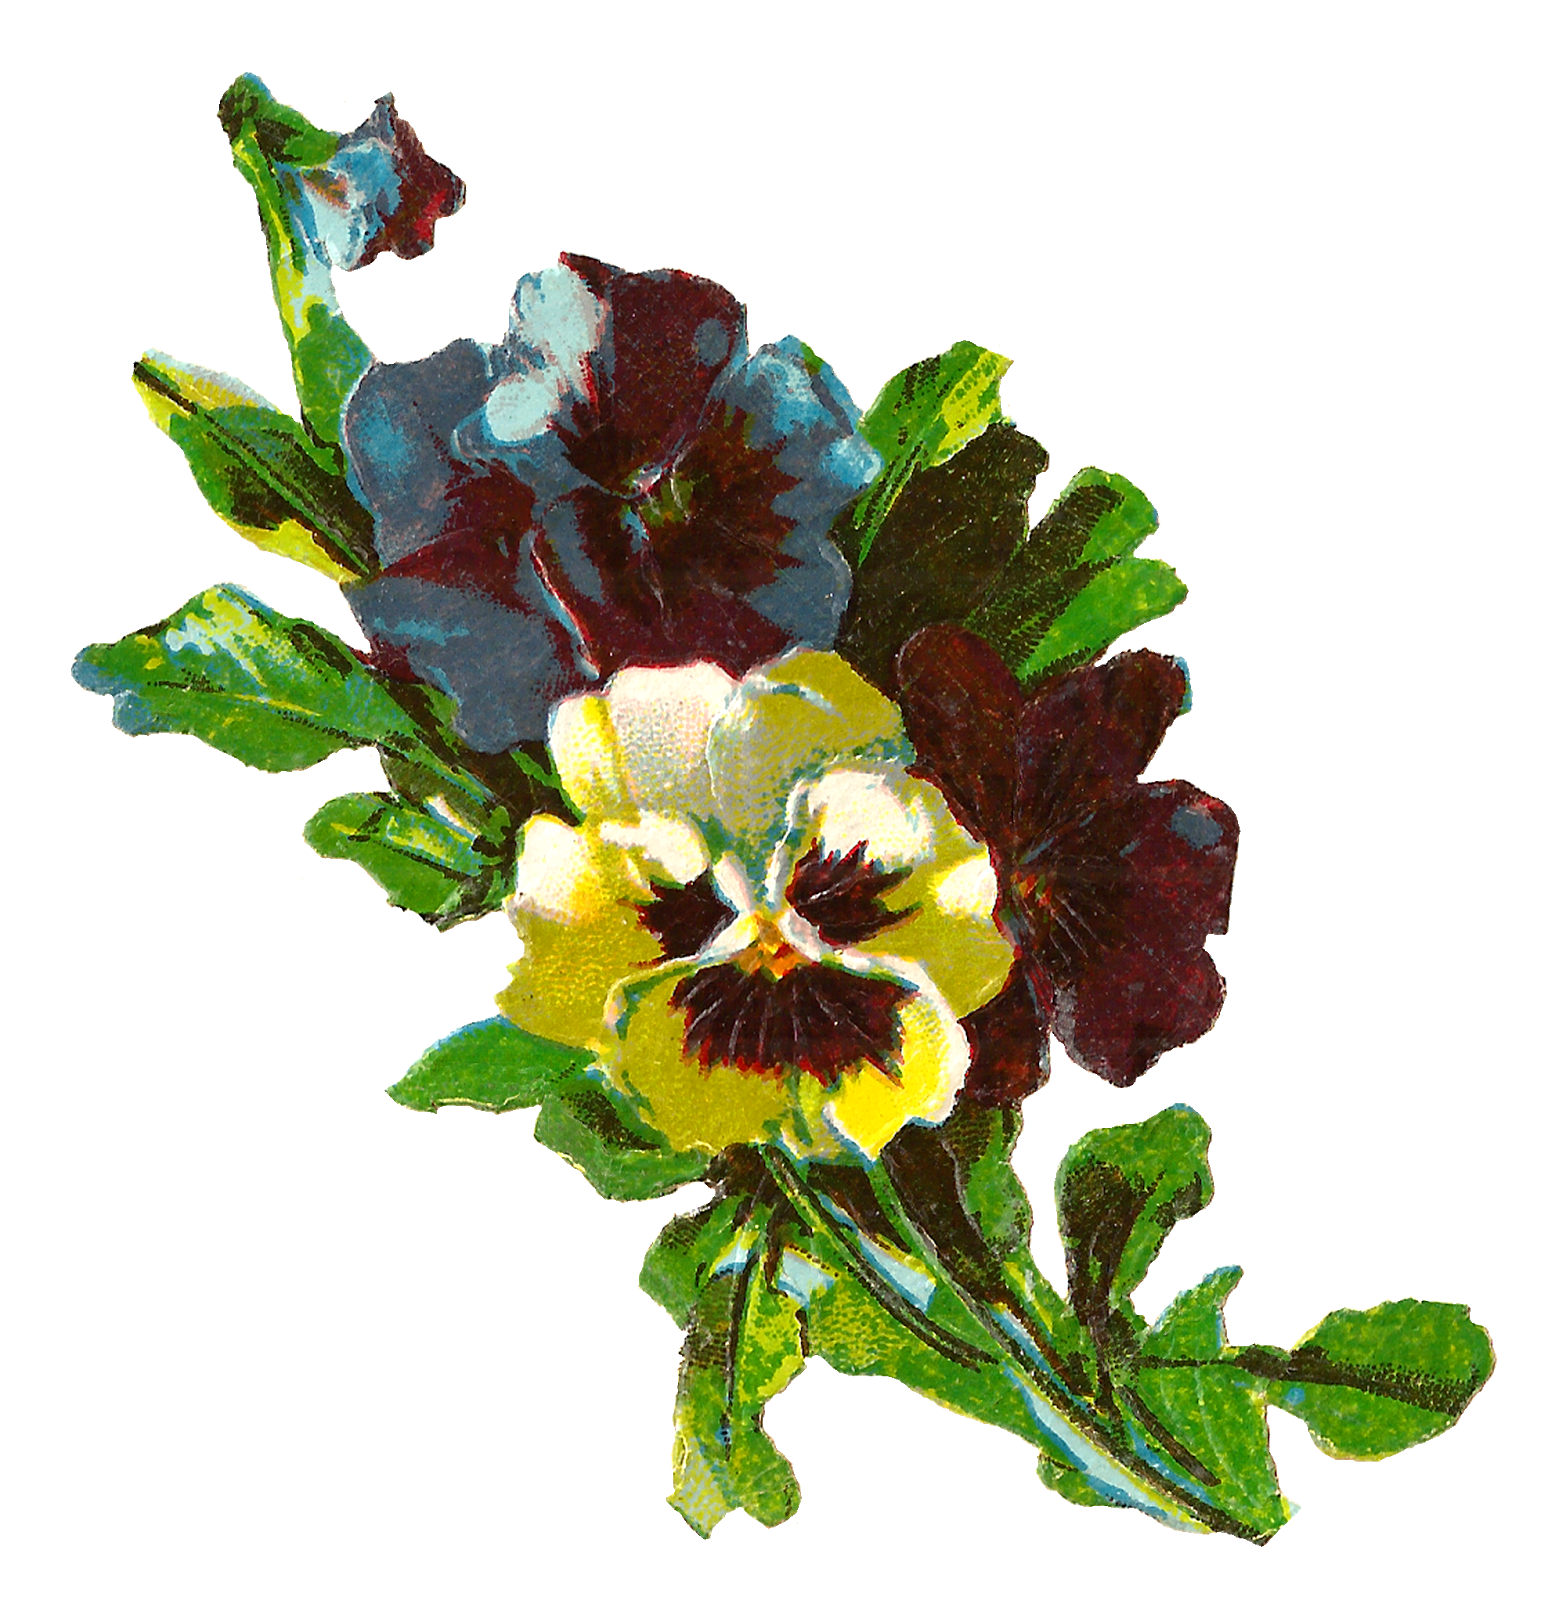 Pansy flower clipart vector transparent library Antique Images: Pansy Flower Artwork Image Illustration Botanical ... vector transparent library